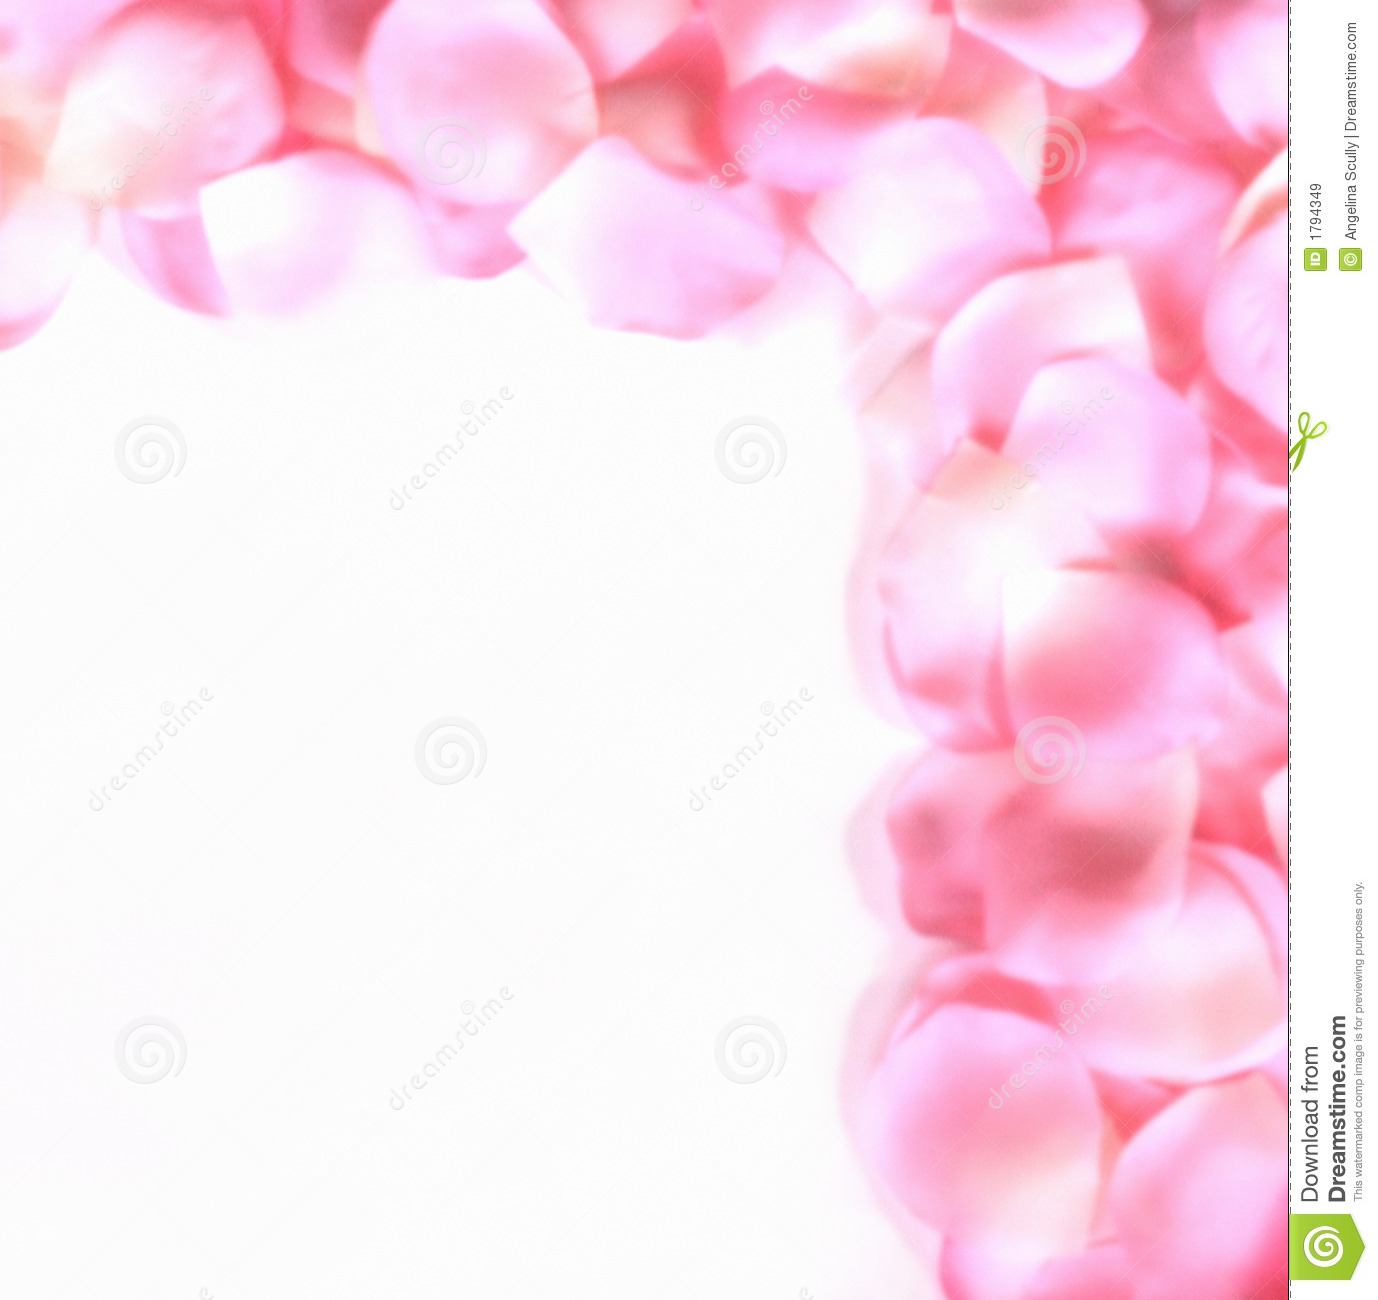 ... and white rose petals arranged in a border over a white background